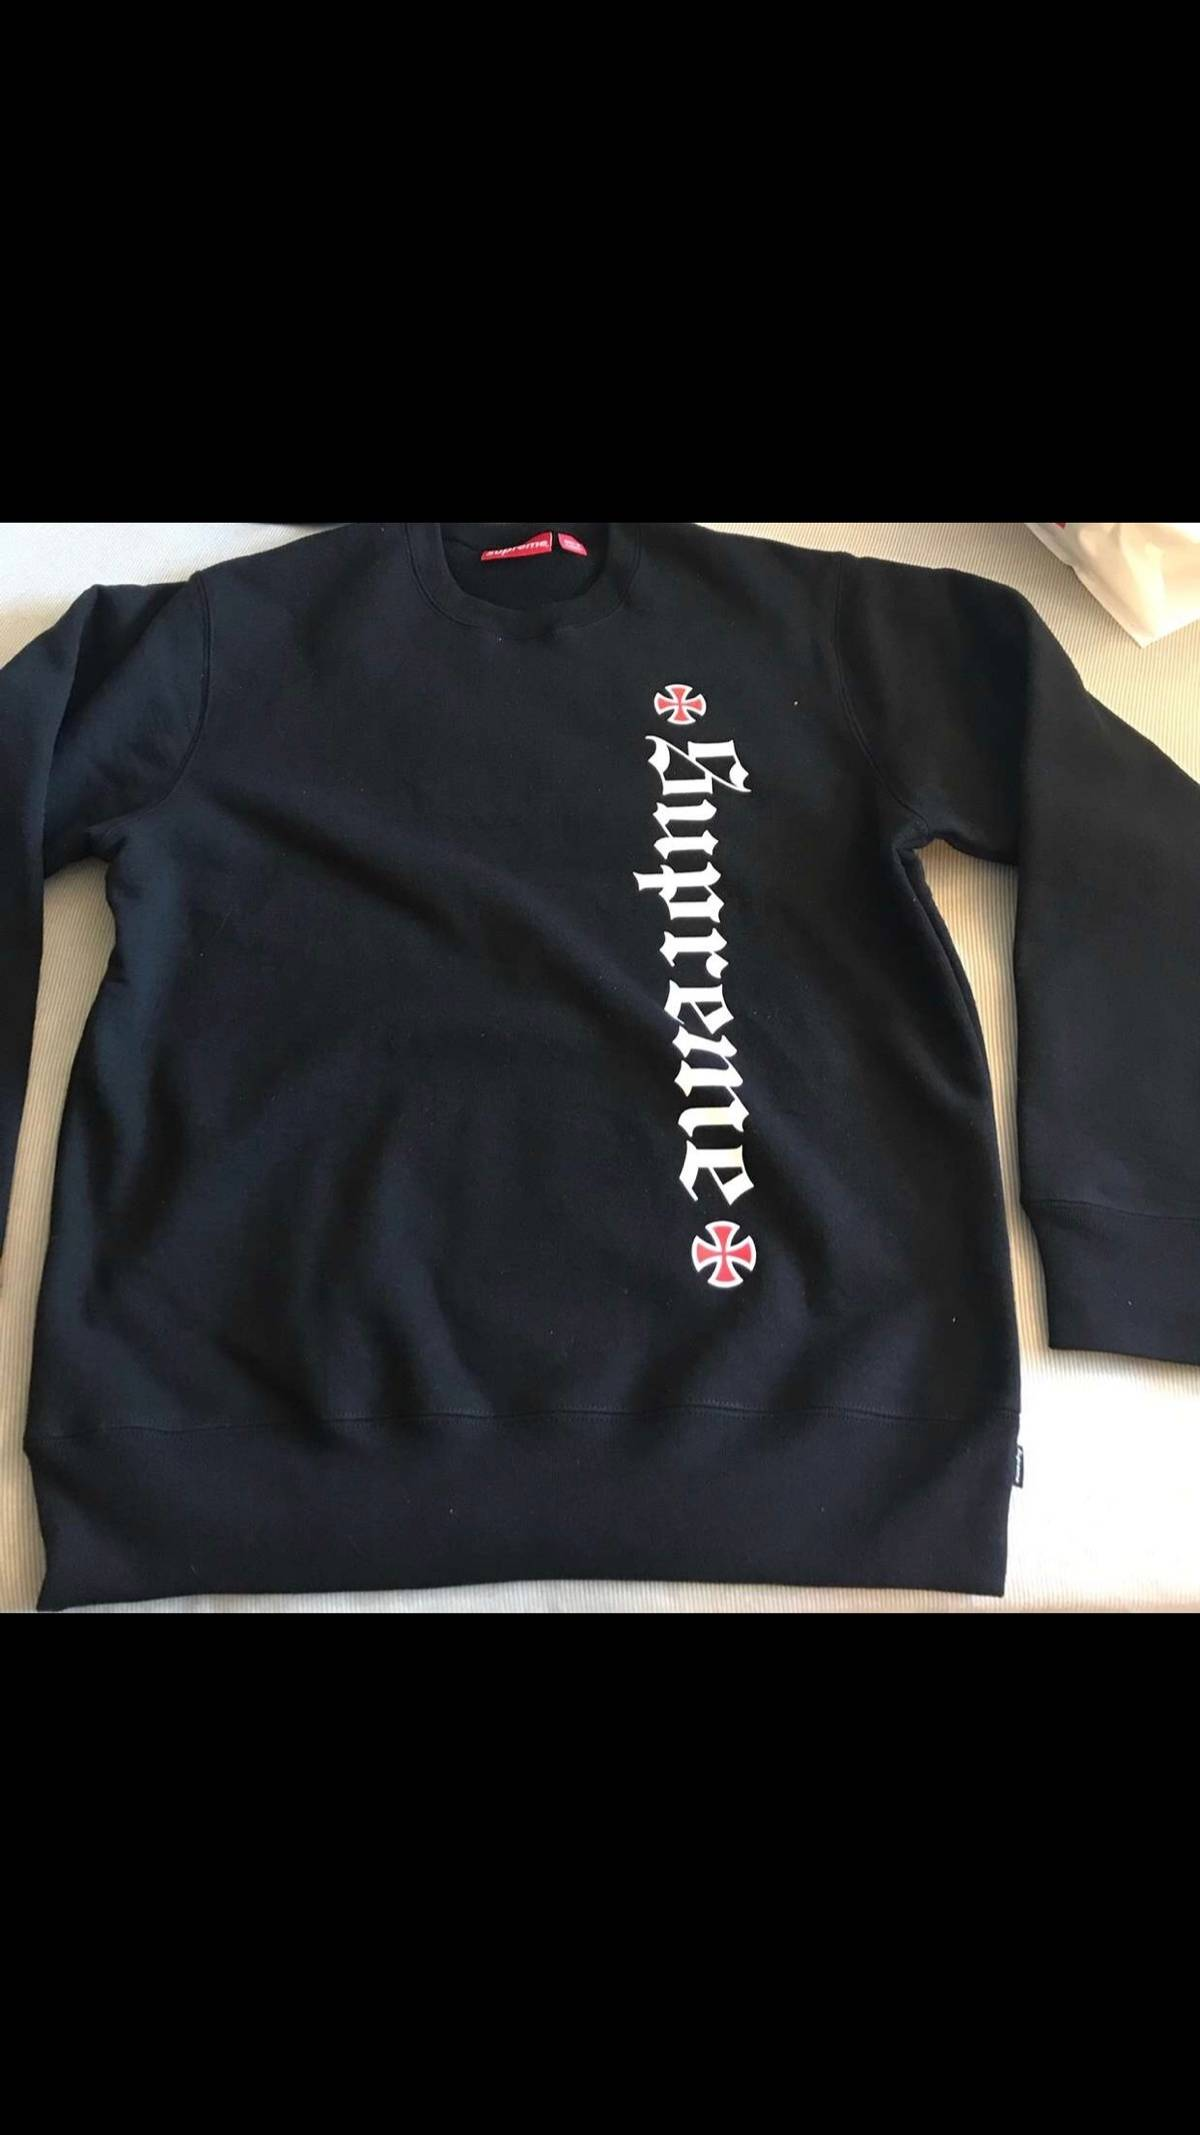 0a3ef9bde18 Supreme Supreme X Independent Crewneck Size m - Long Sleeve T-Shirts ...